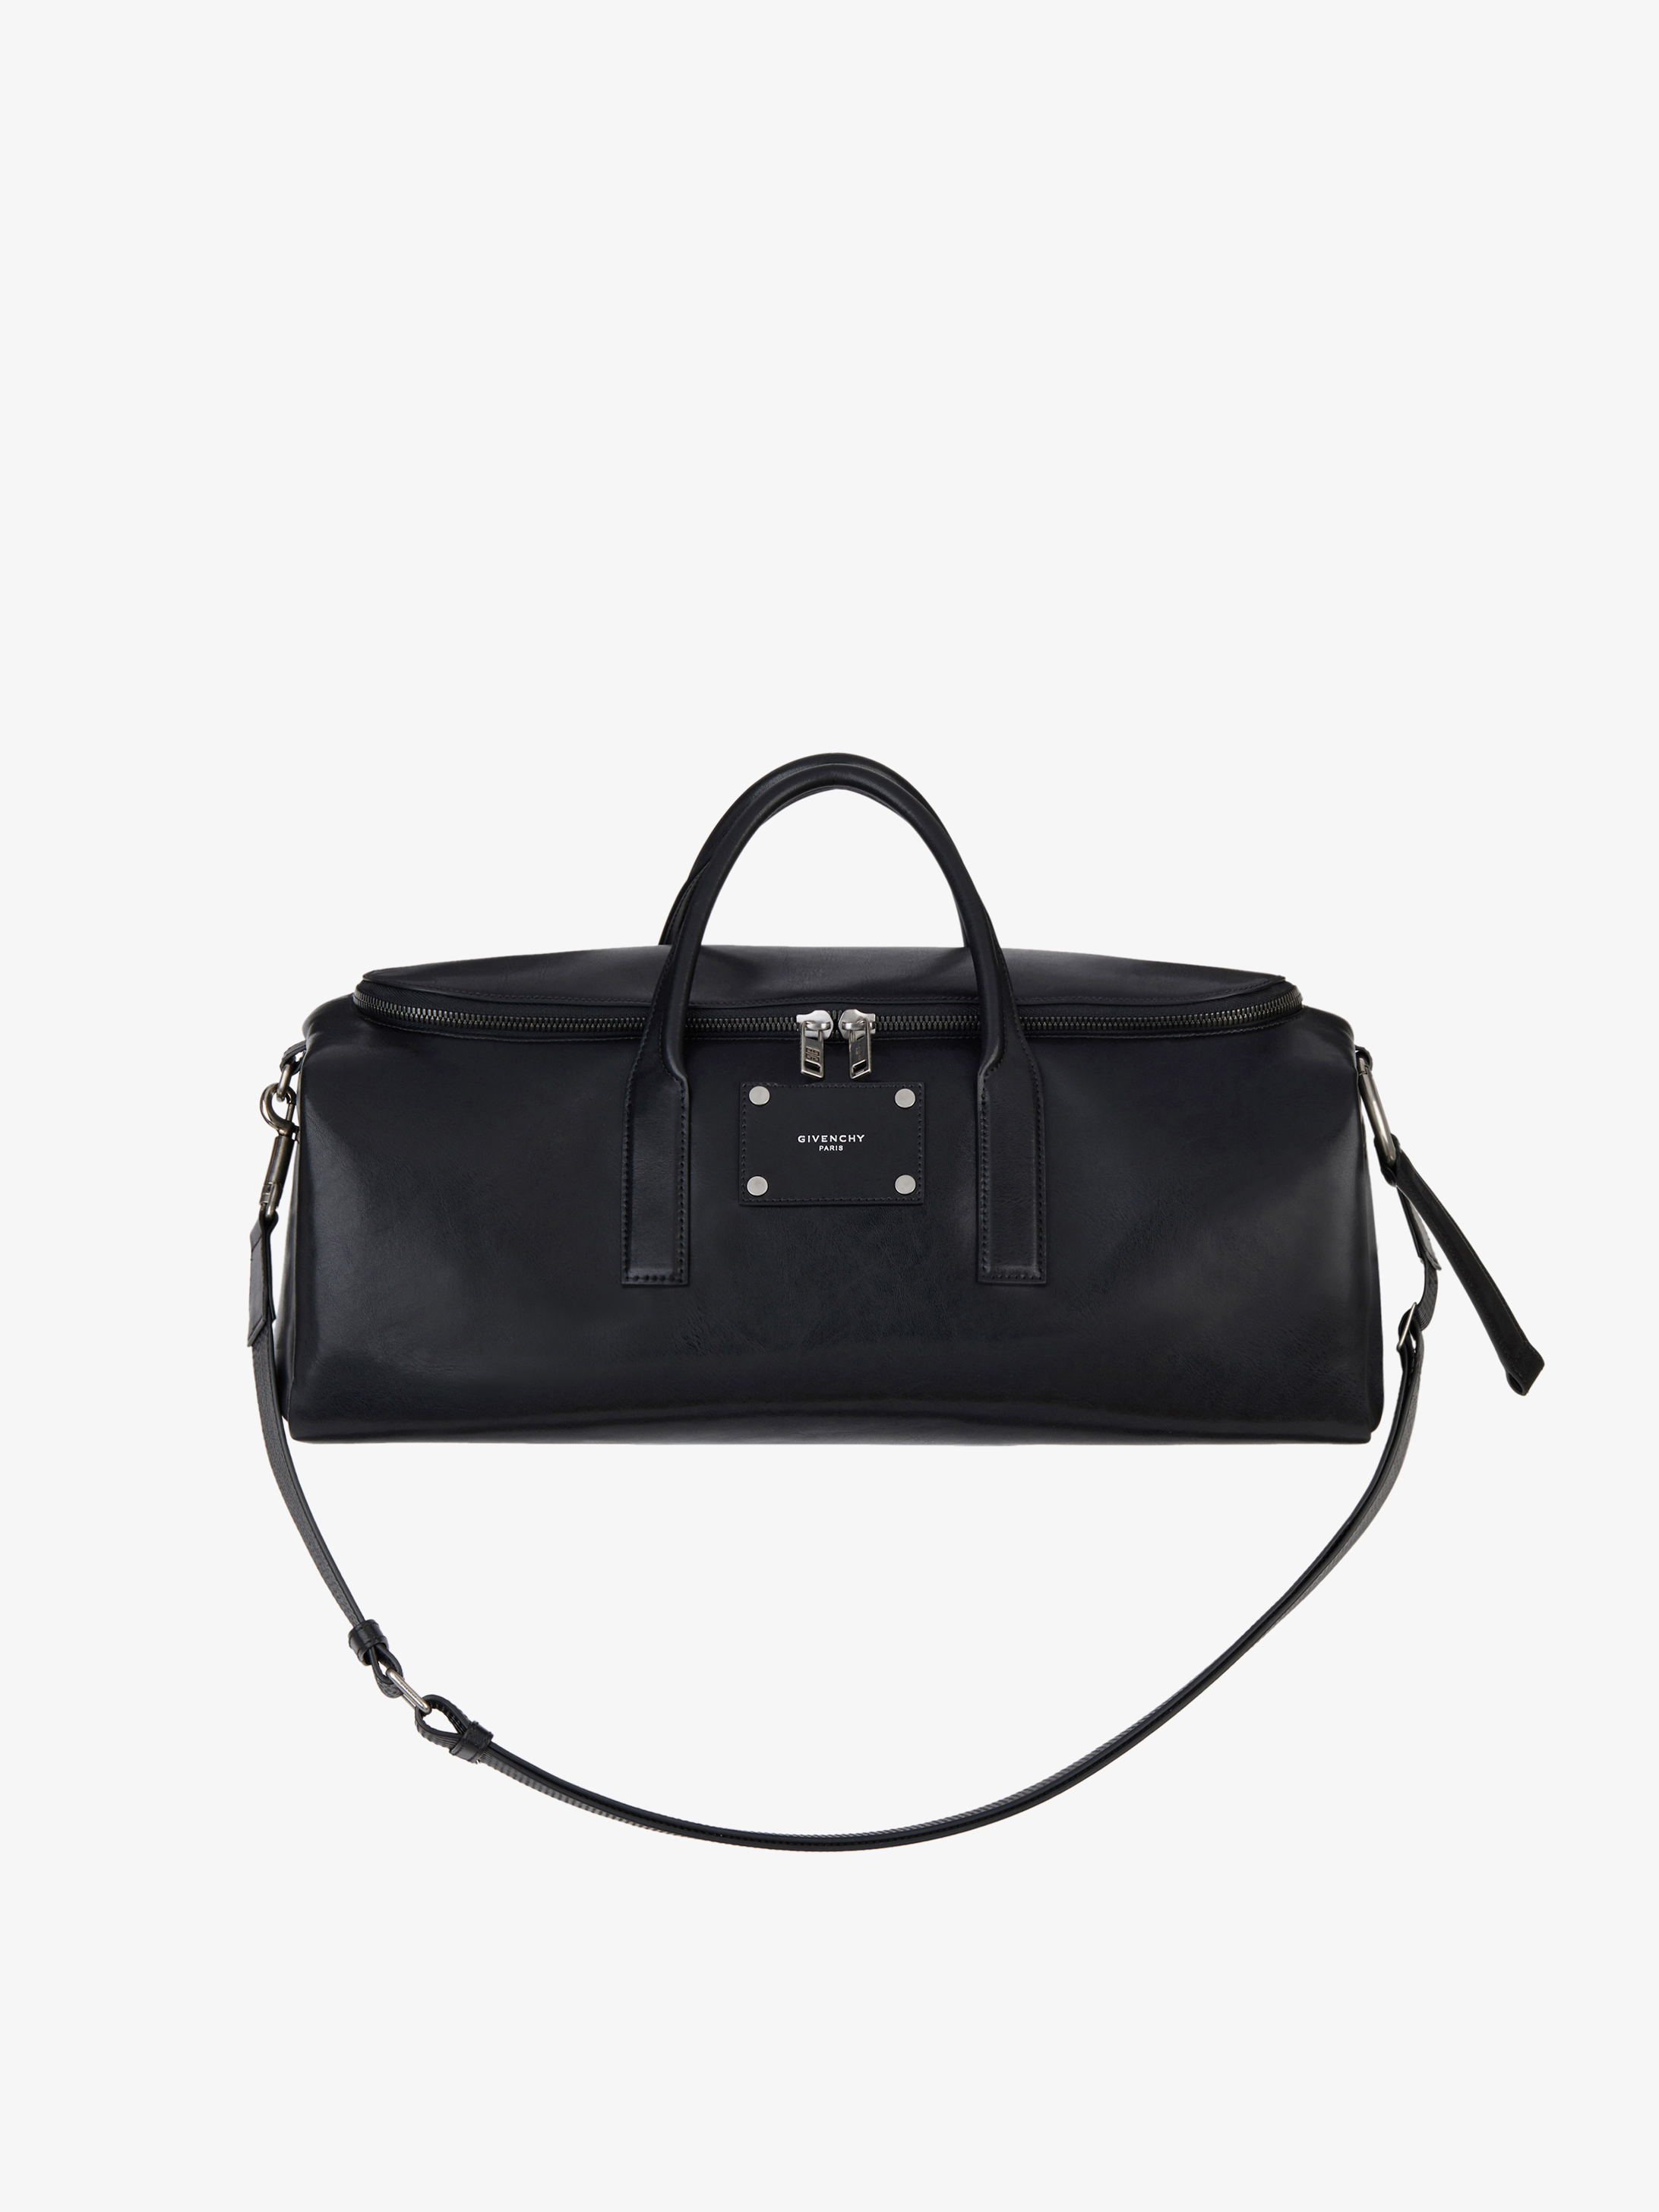 Givenchy tag weekender bag in smooth leather